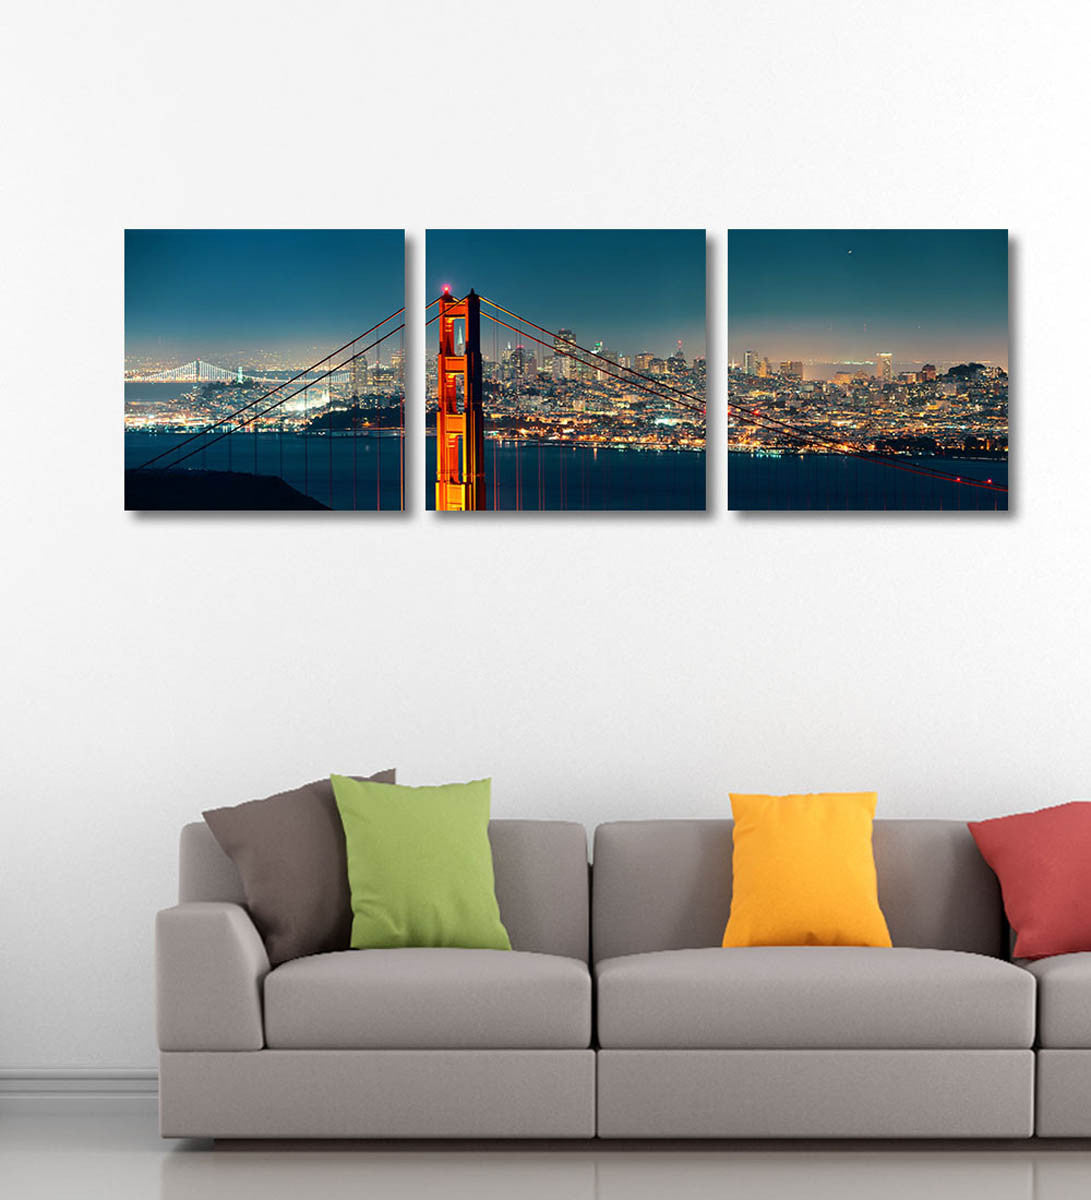 San Francisco Panorama - Art Panels by Hamid Raza | Buy Posters ...